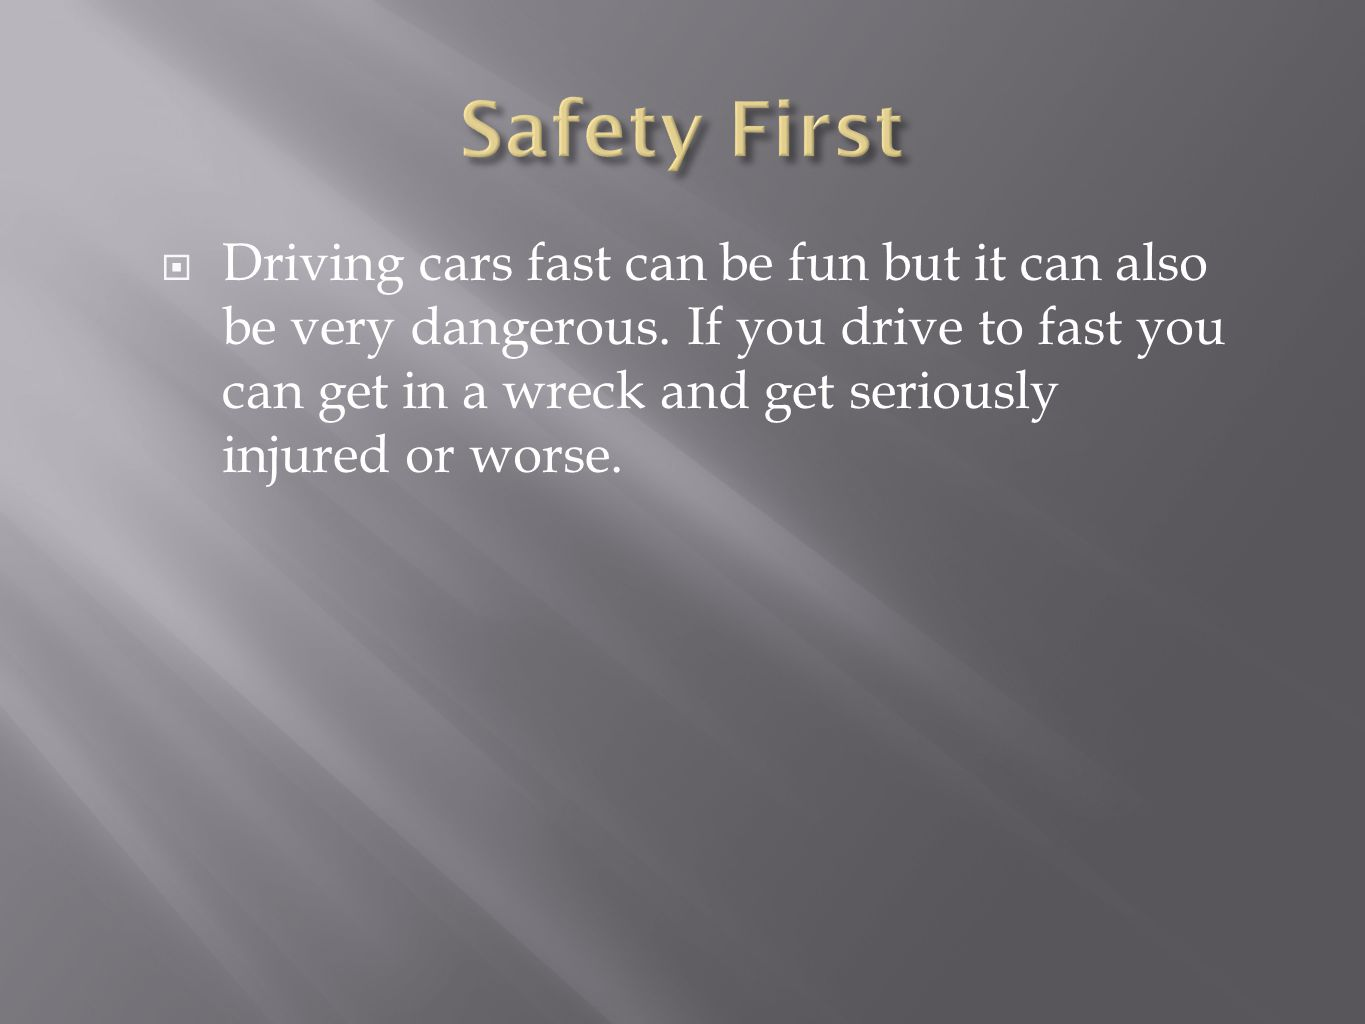 Driving cars fast can be fun but it can also be very dangerous.